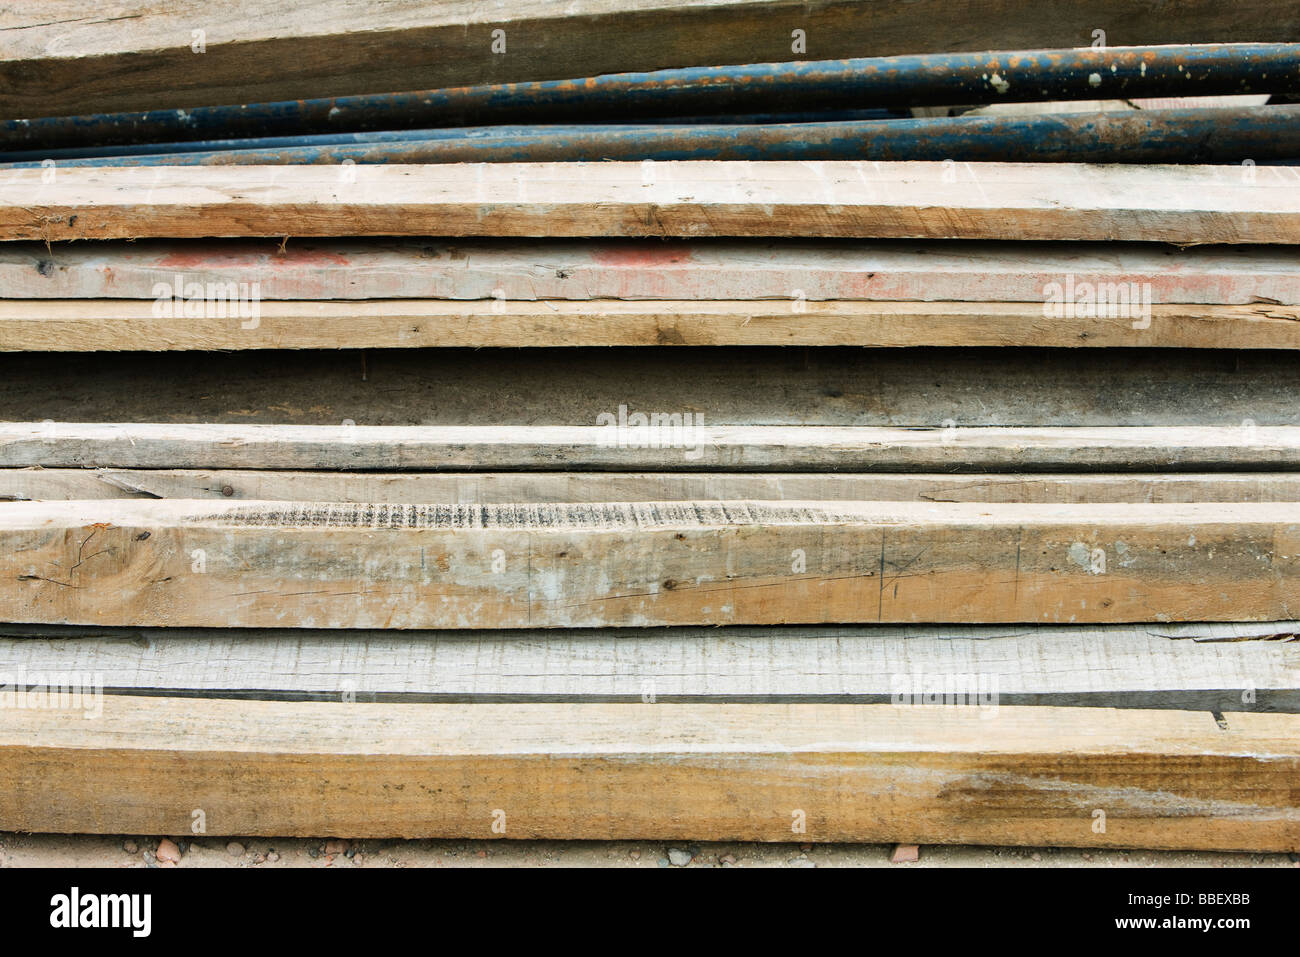 Pile of wooden planks, close-up - Stock Image